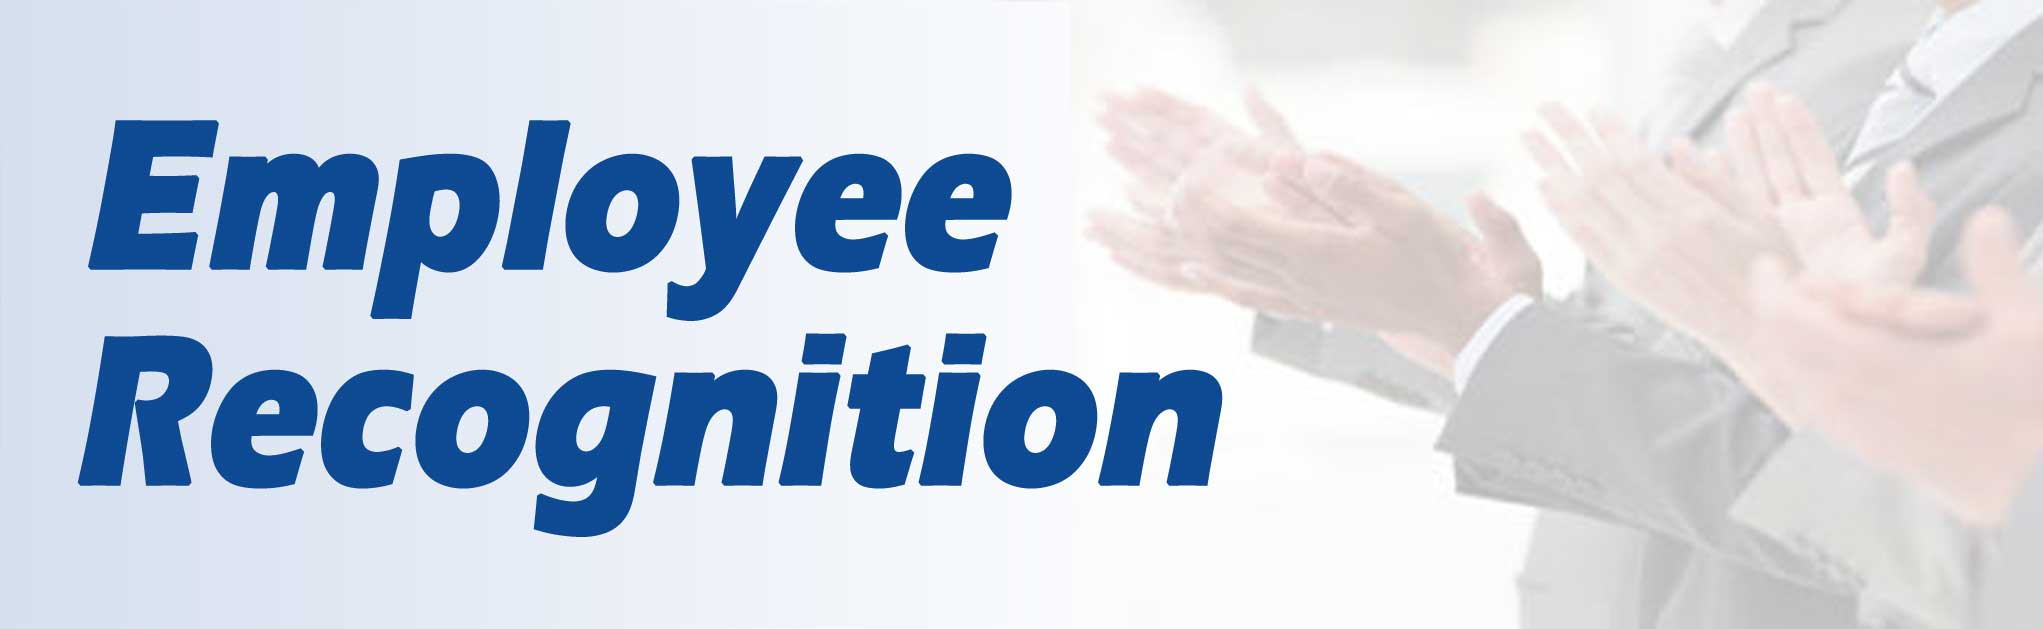 employee recognition icon